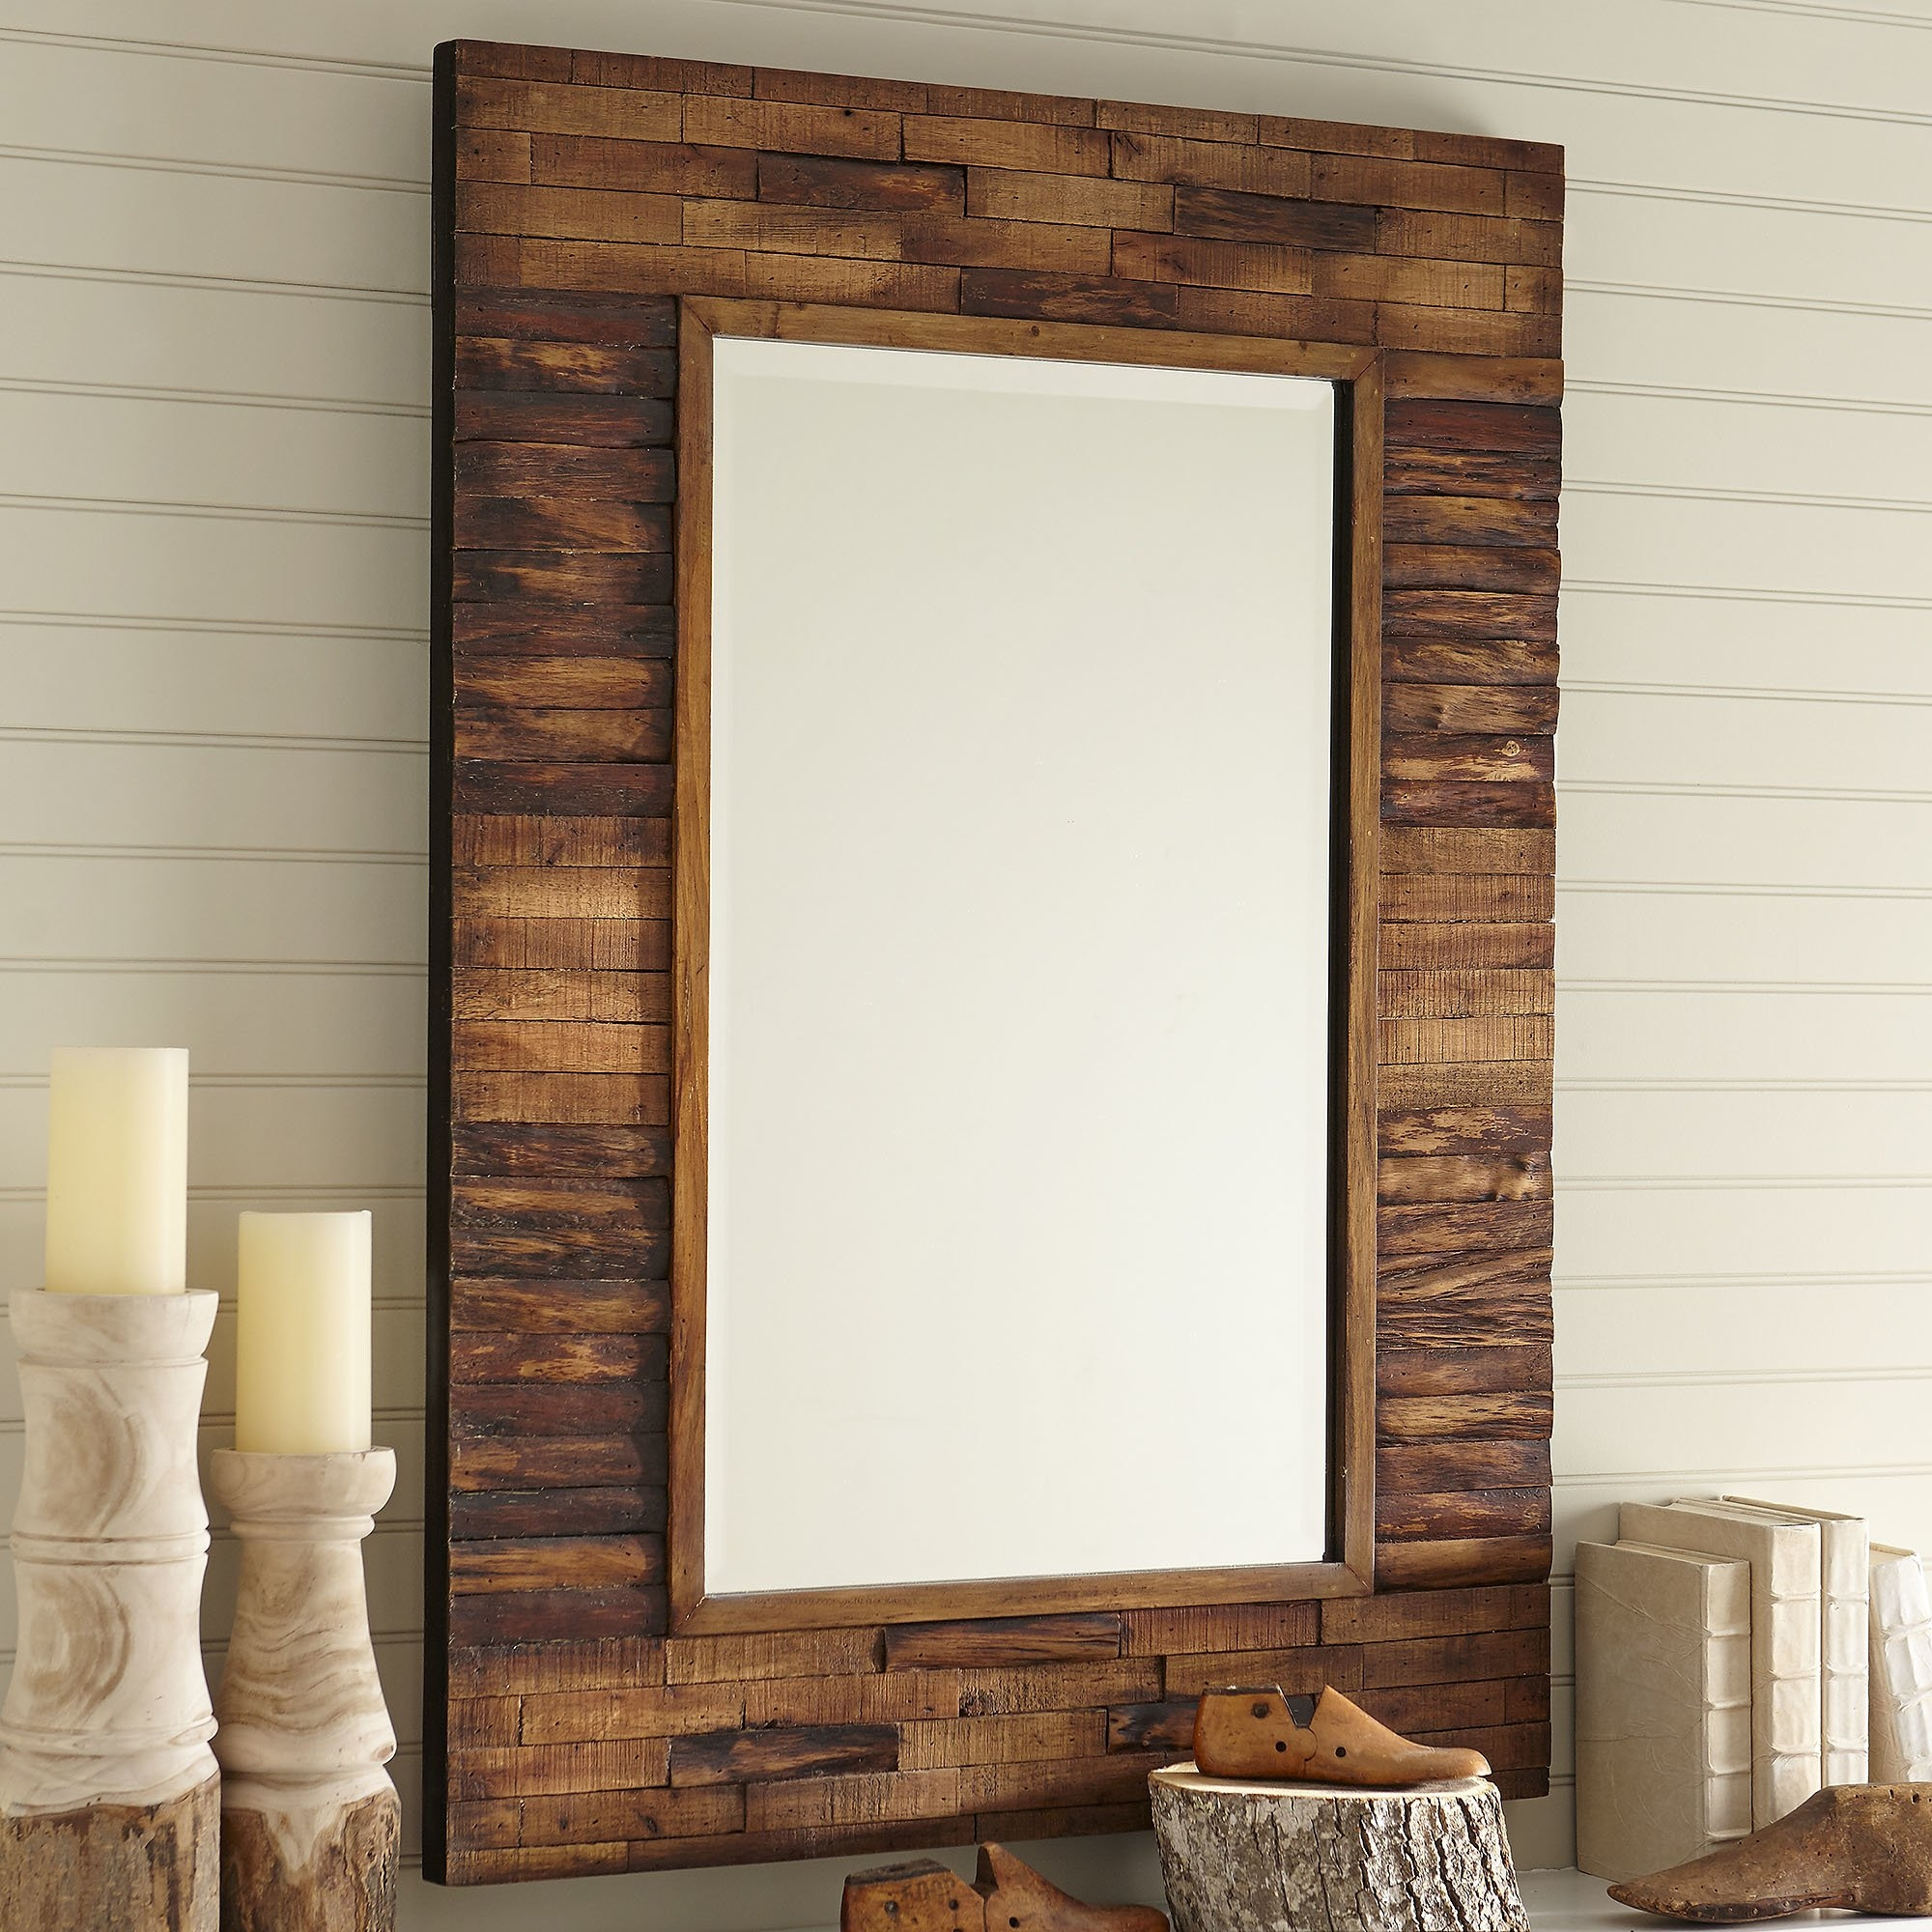 Rustic Wall Mirrors Youll Love Wayfair Intended For Old Mirrors For Sale (Image 13 of 15)